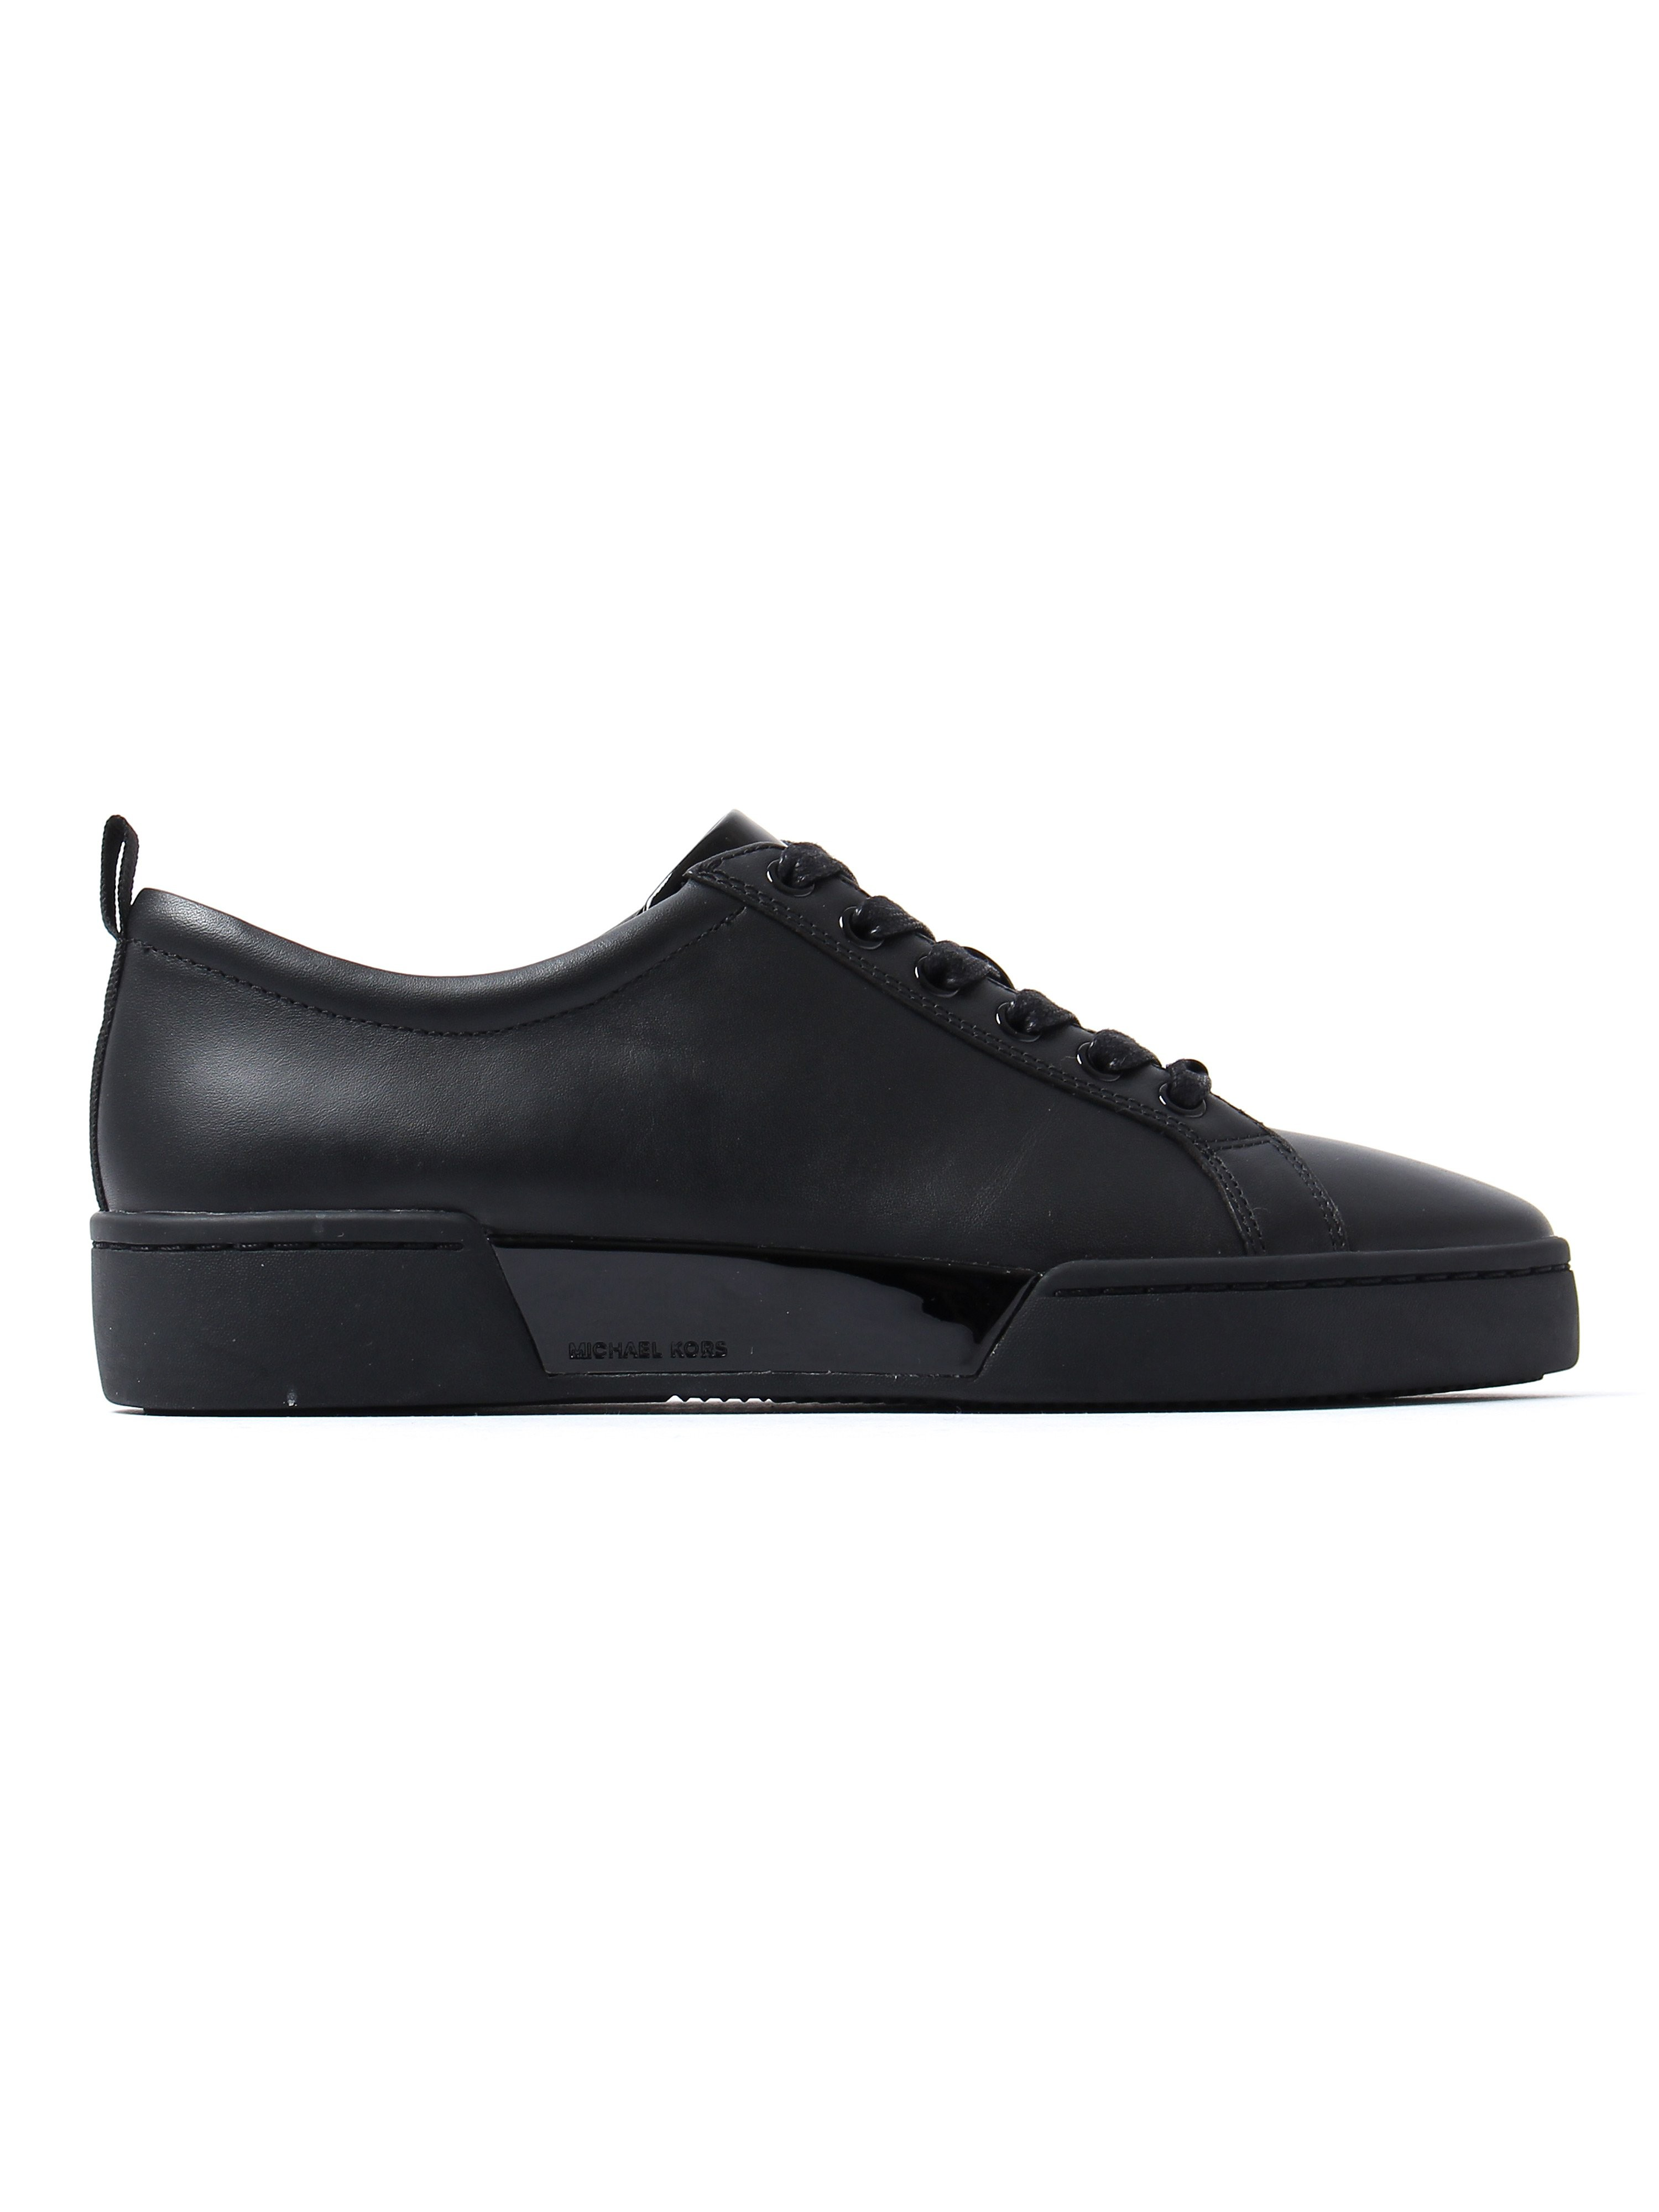 MICHAEL Michael Kors Women's Brenden Low Top Trainers - Black Leather